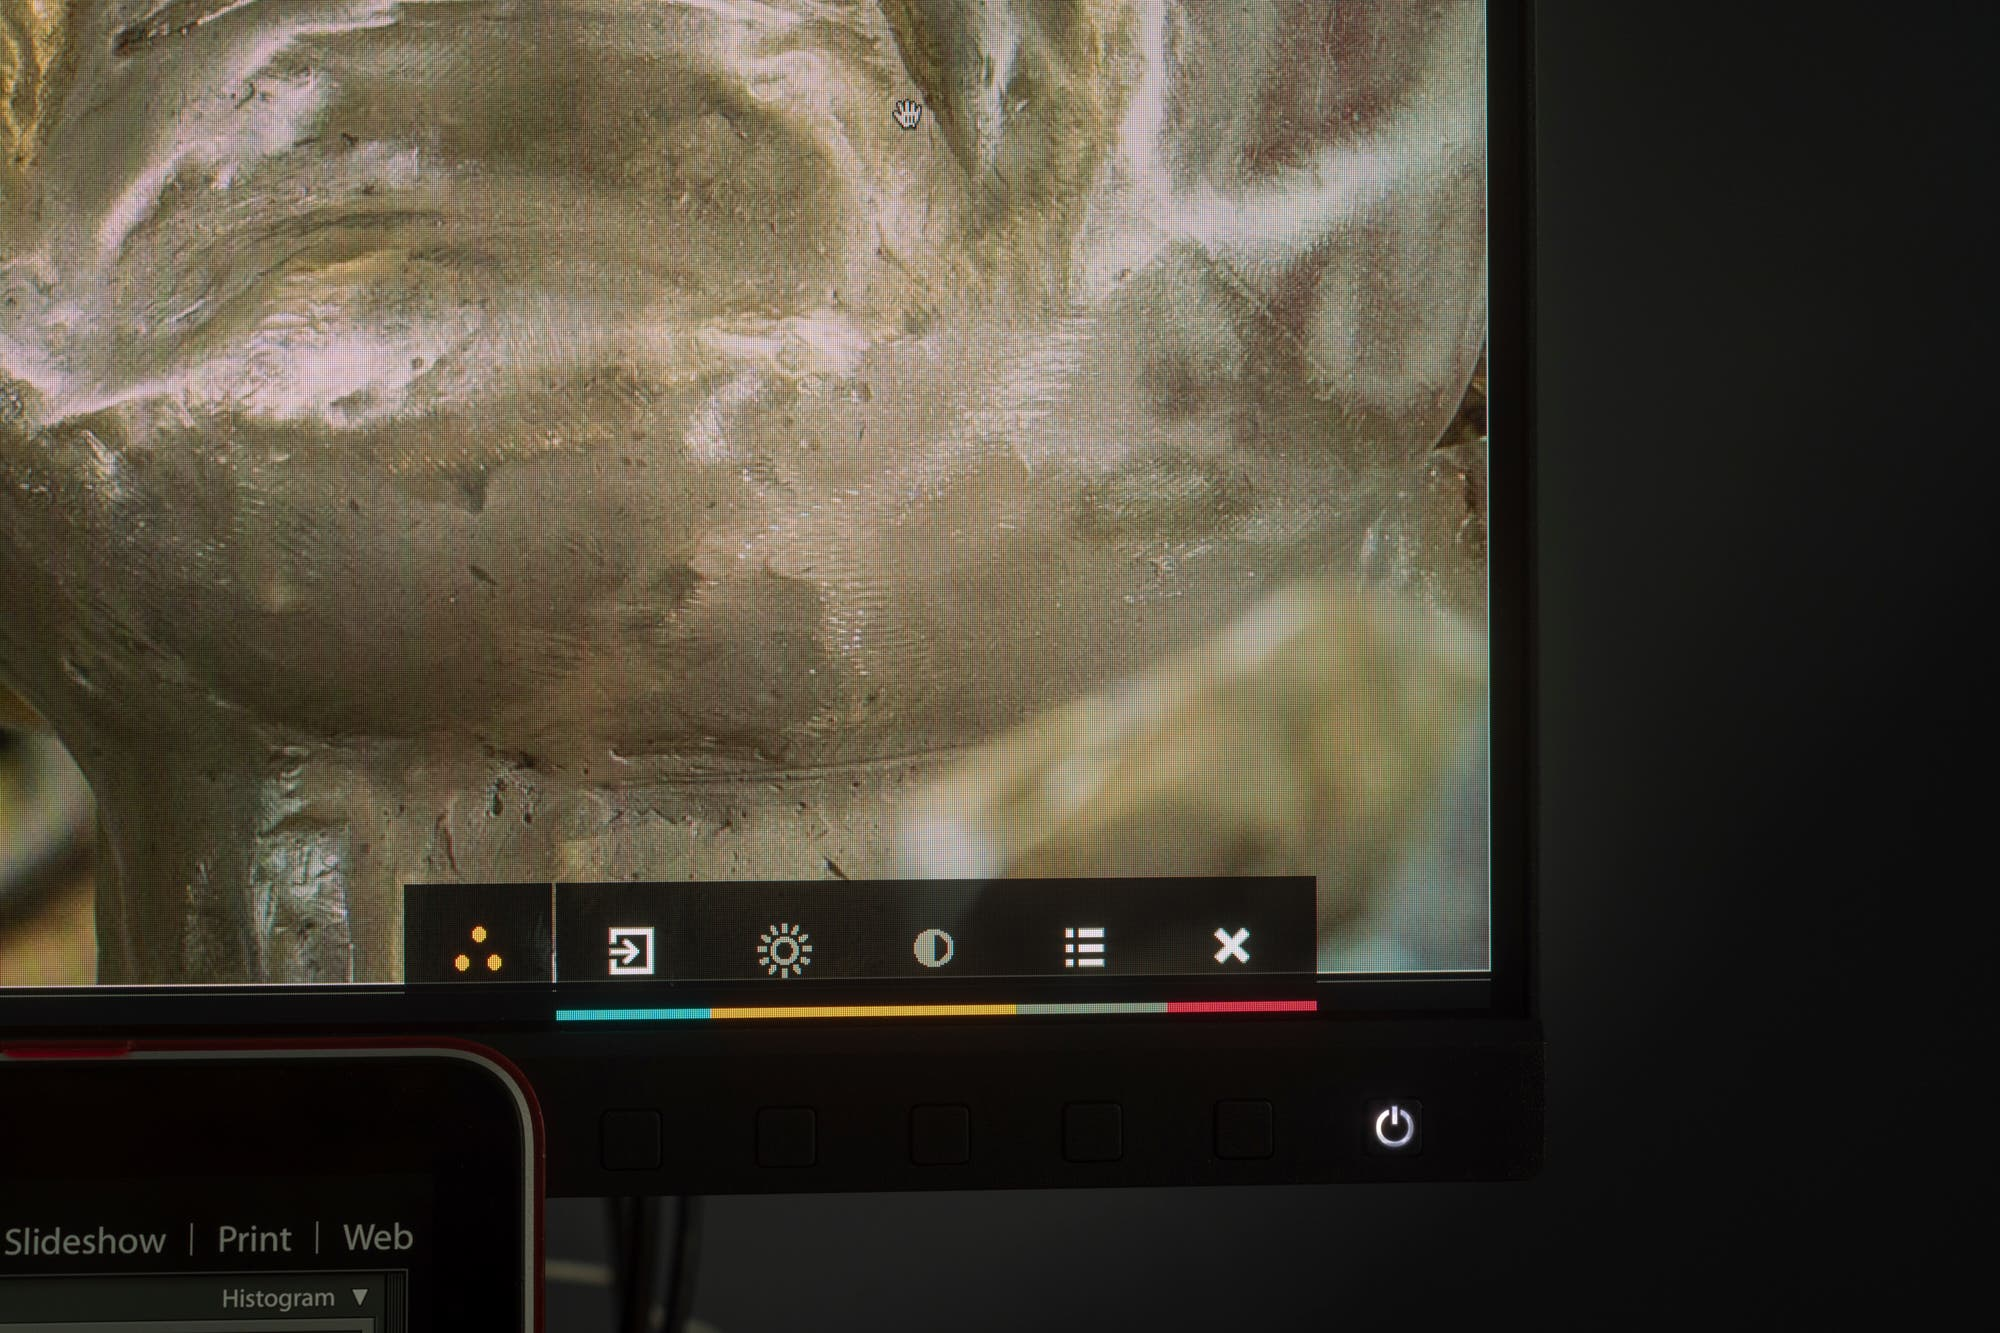 Monitor Review: BenQ SW240 Monitor for Photographers